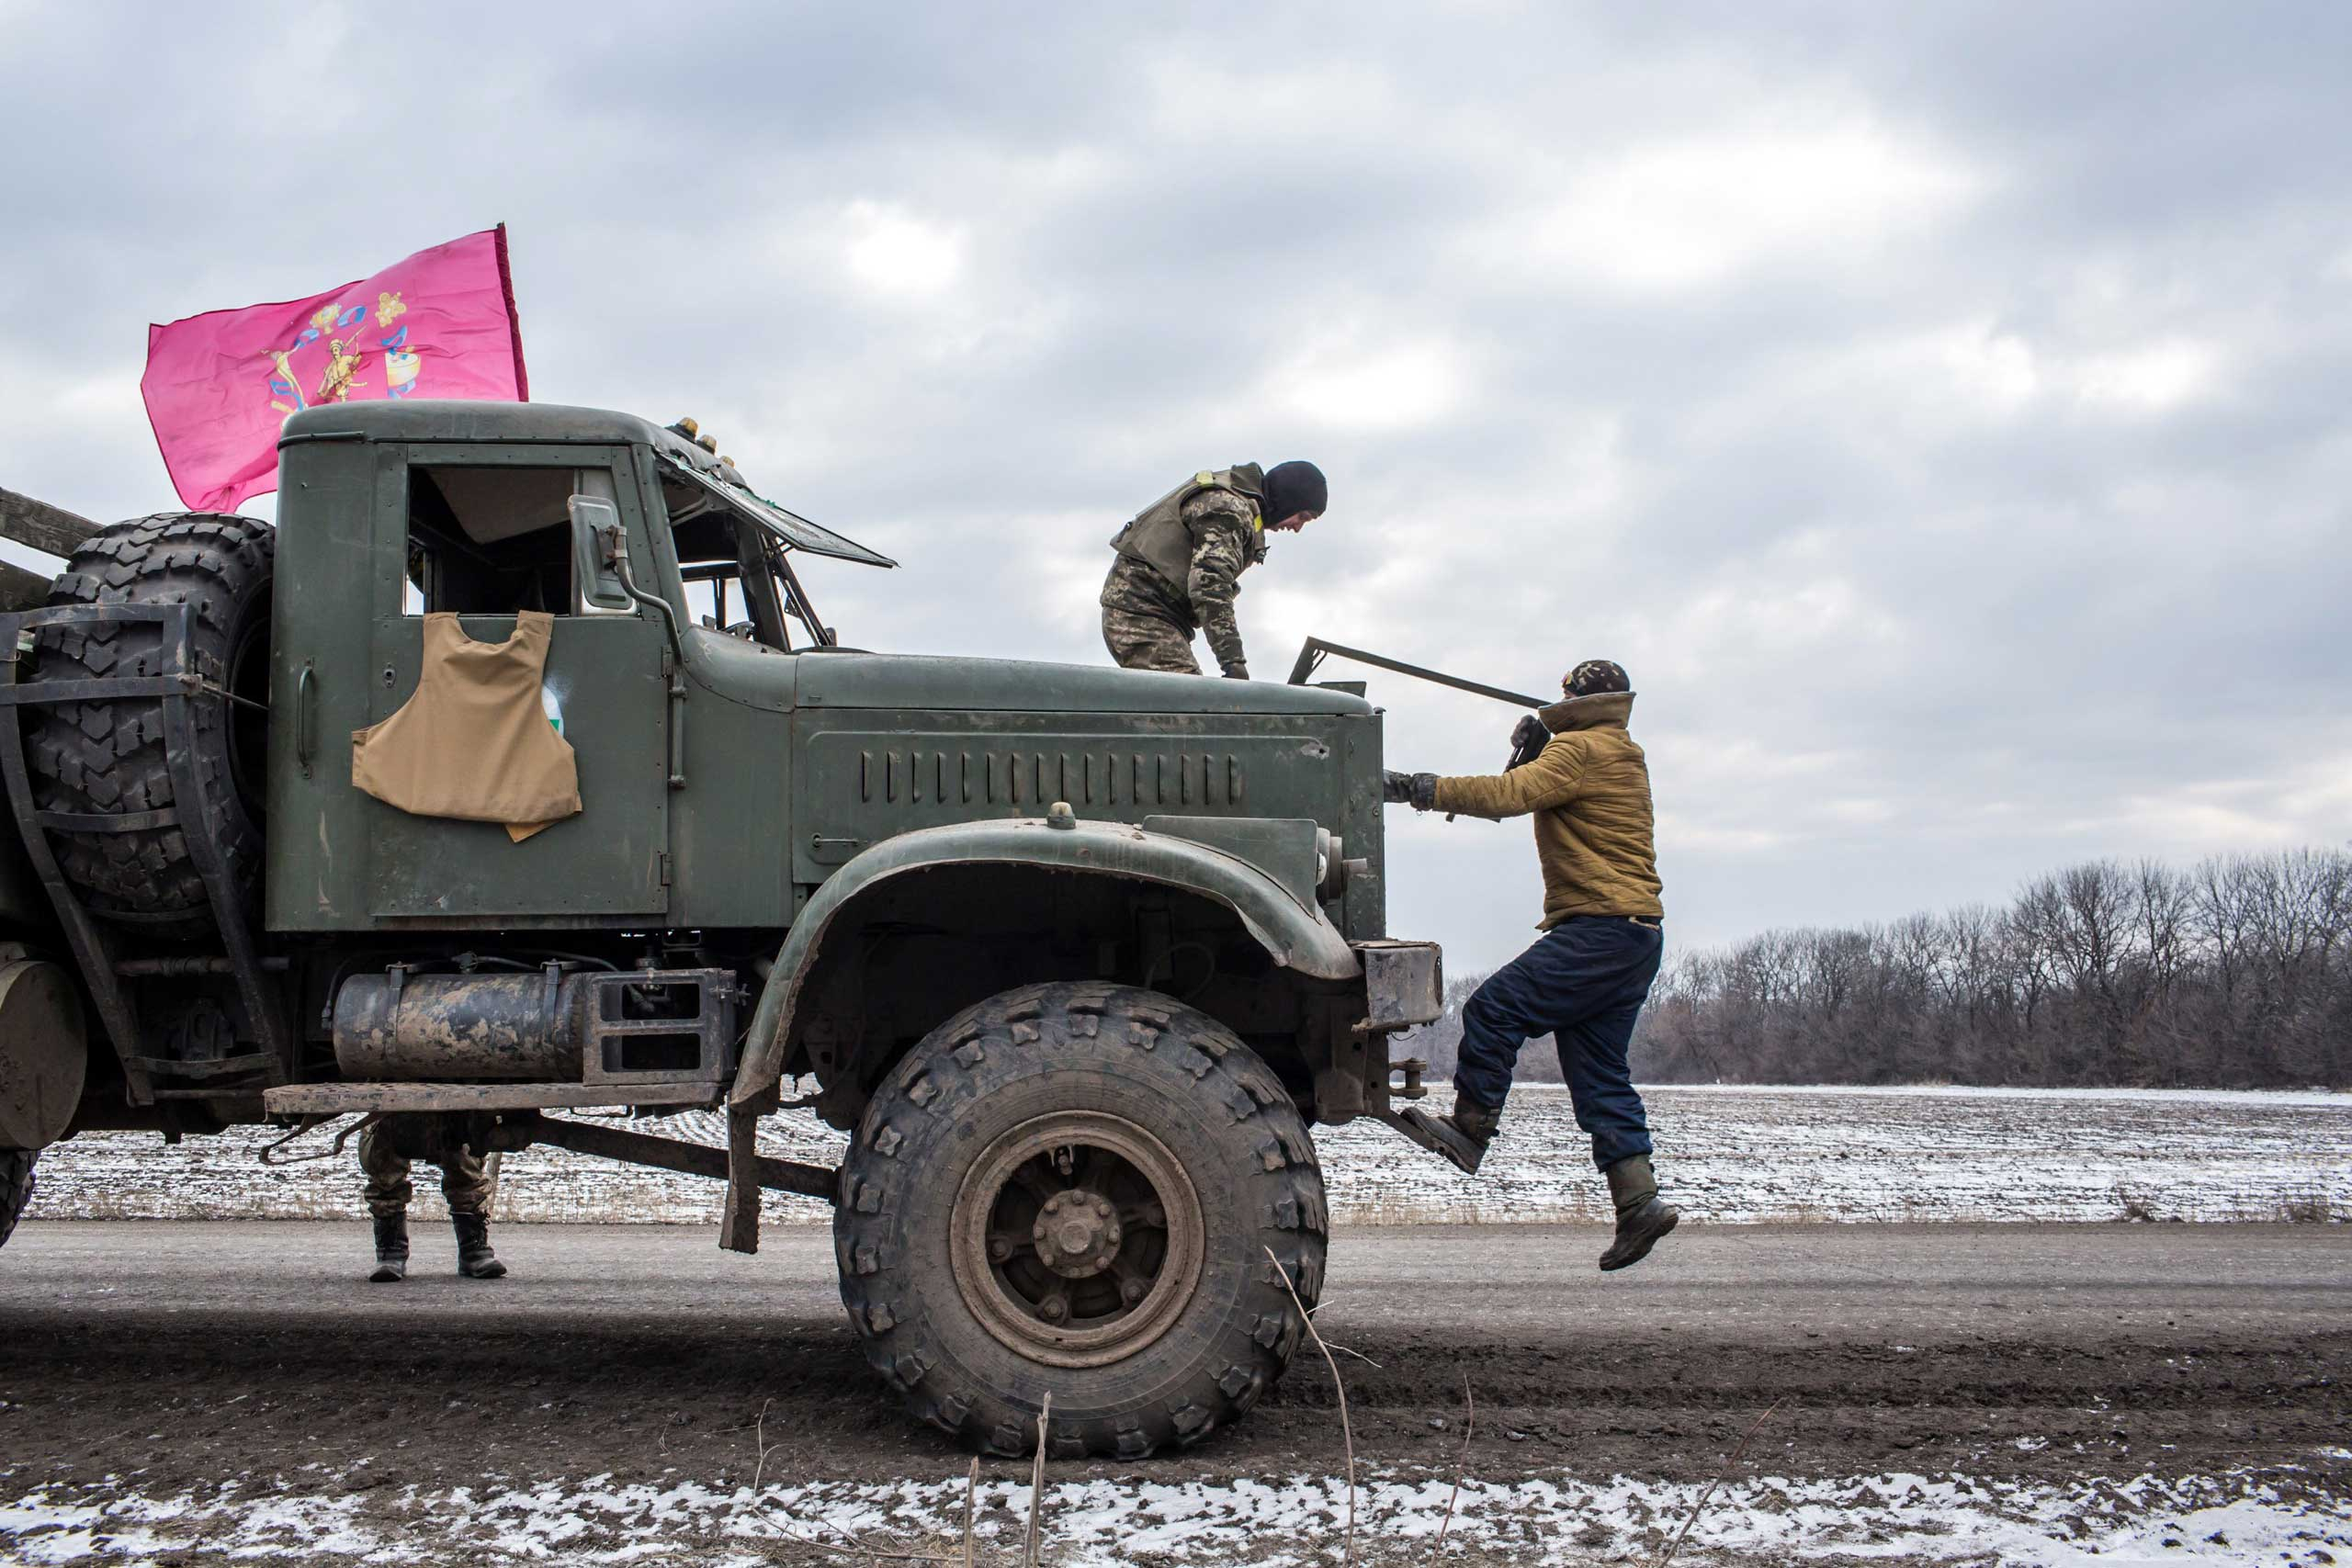 Ukrainian soldiers from a unit based in Zaporizhia repair the bullet-shattered windshield of a truck after taking fire during their withdrawal from Debaltseve the previous day on Feb. 19, 2015 in Artemivsk.